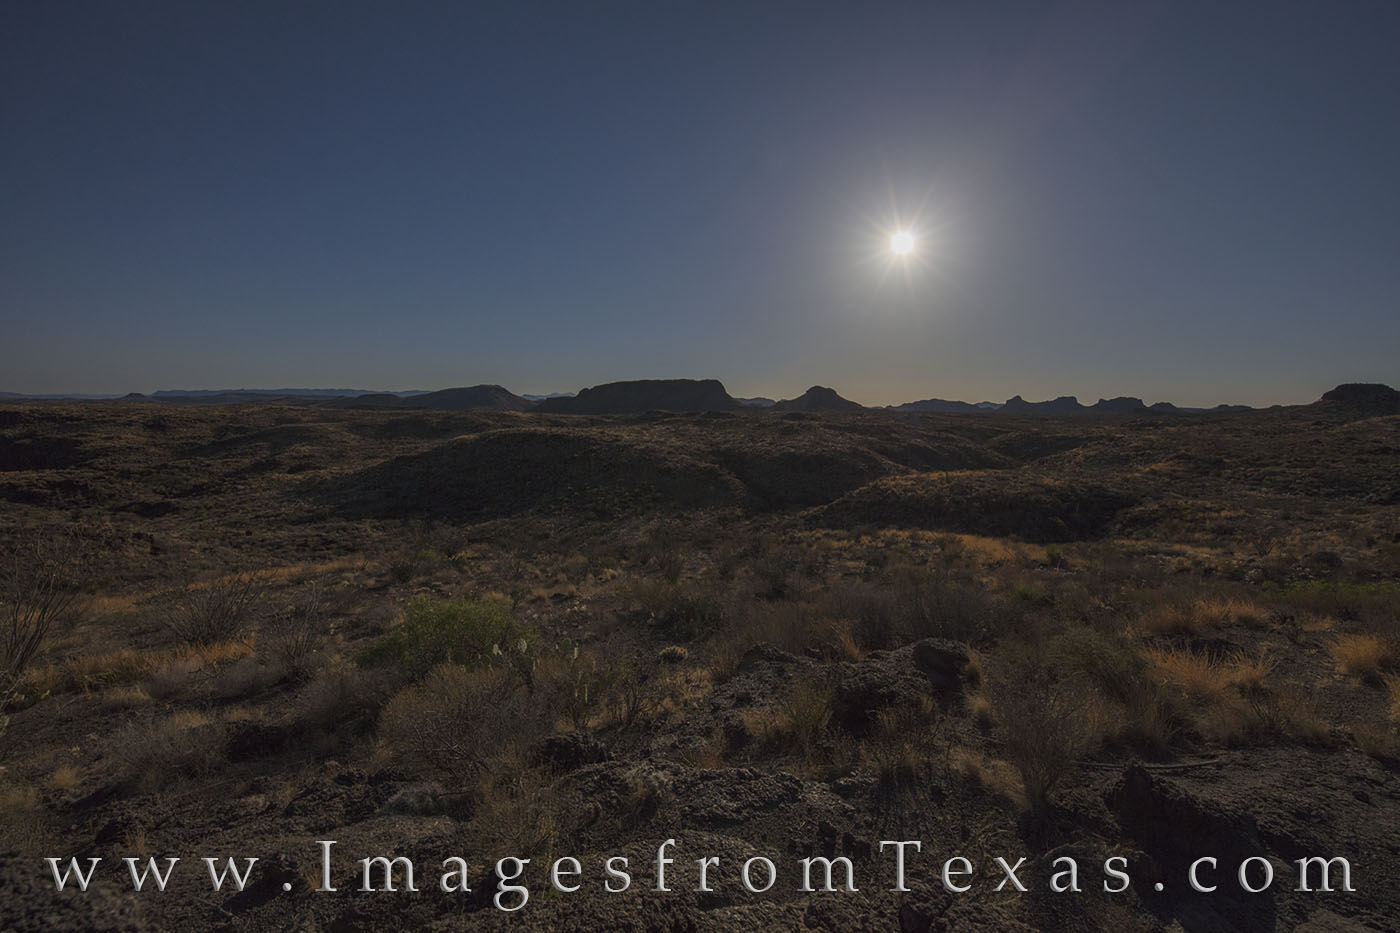 Big bend ranch, full moon, moonset, desert, chihuahuan desert, night, hiking, night hikes, west texas